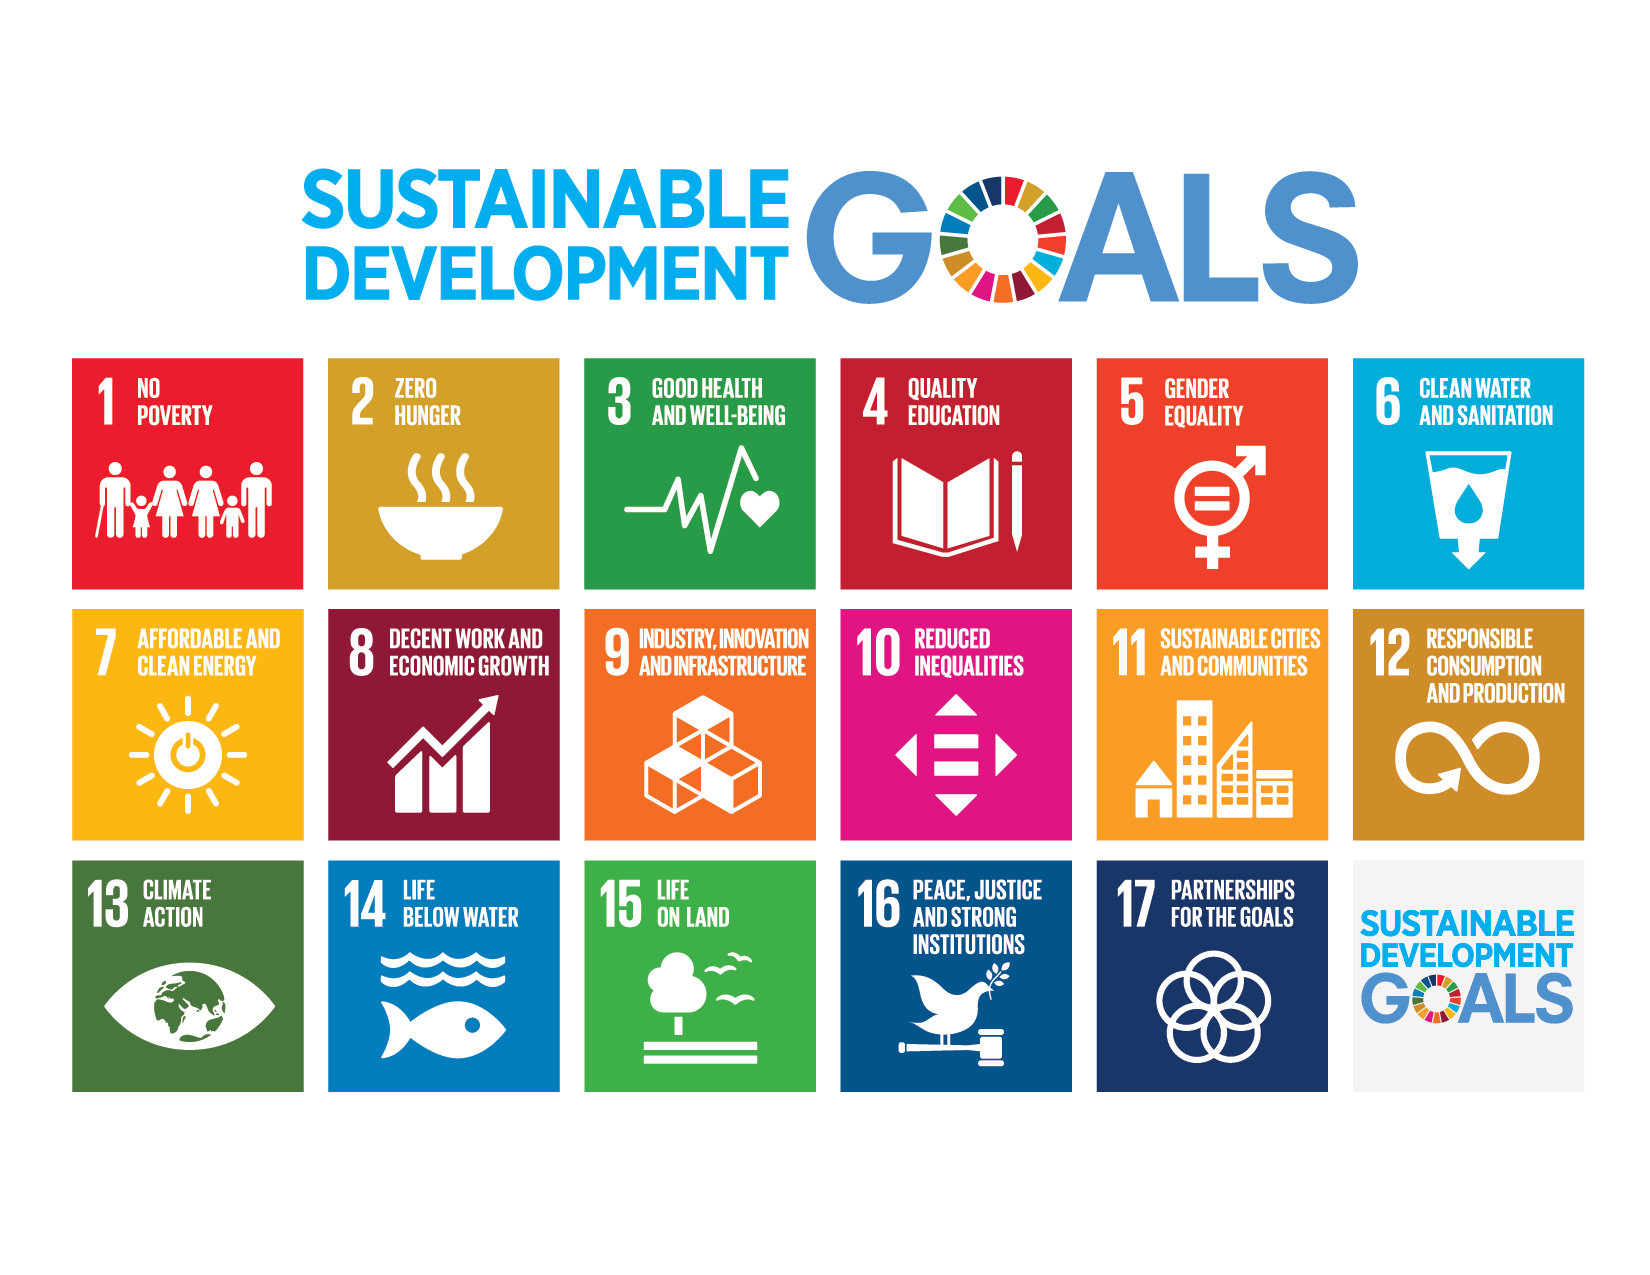 Poster of the Sustainable Development Goals, made up of 17 tiles, each with a number, title and icon.